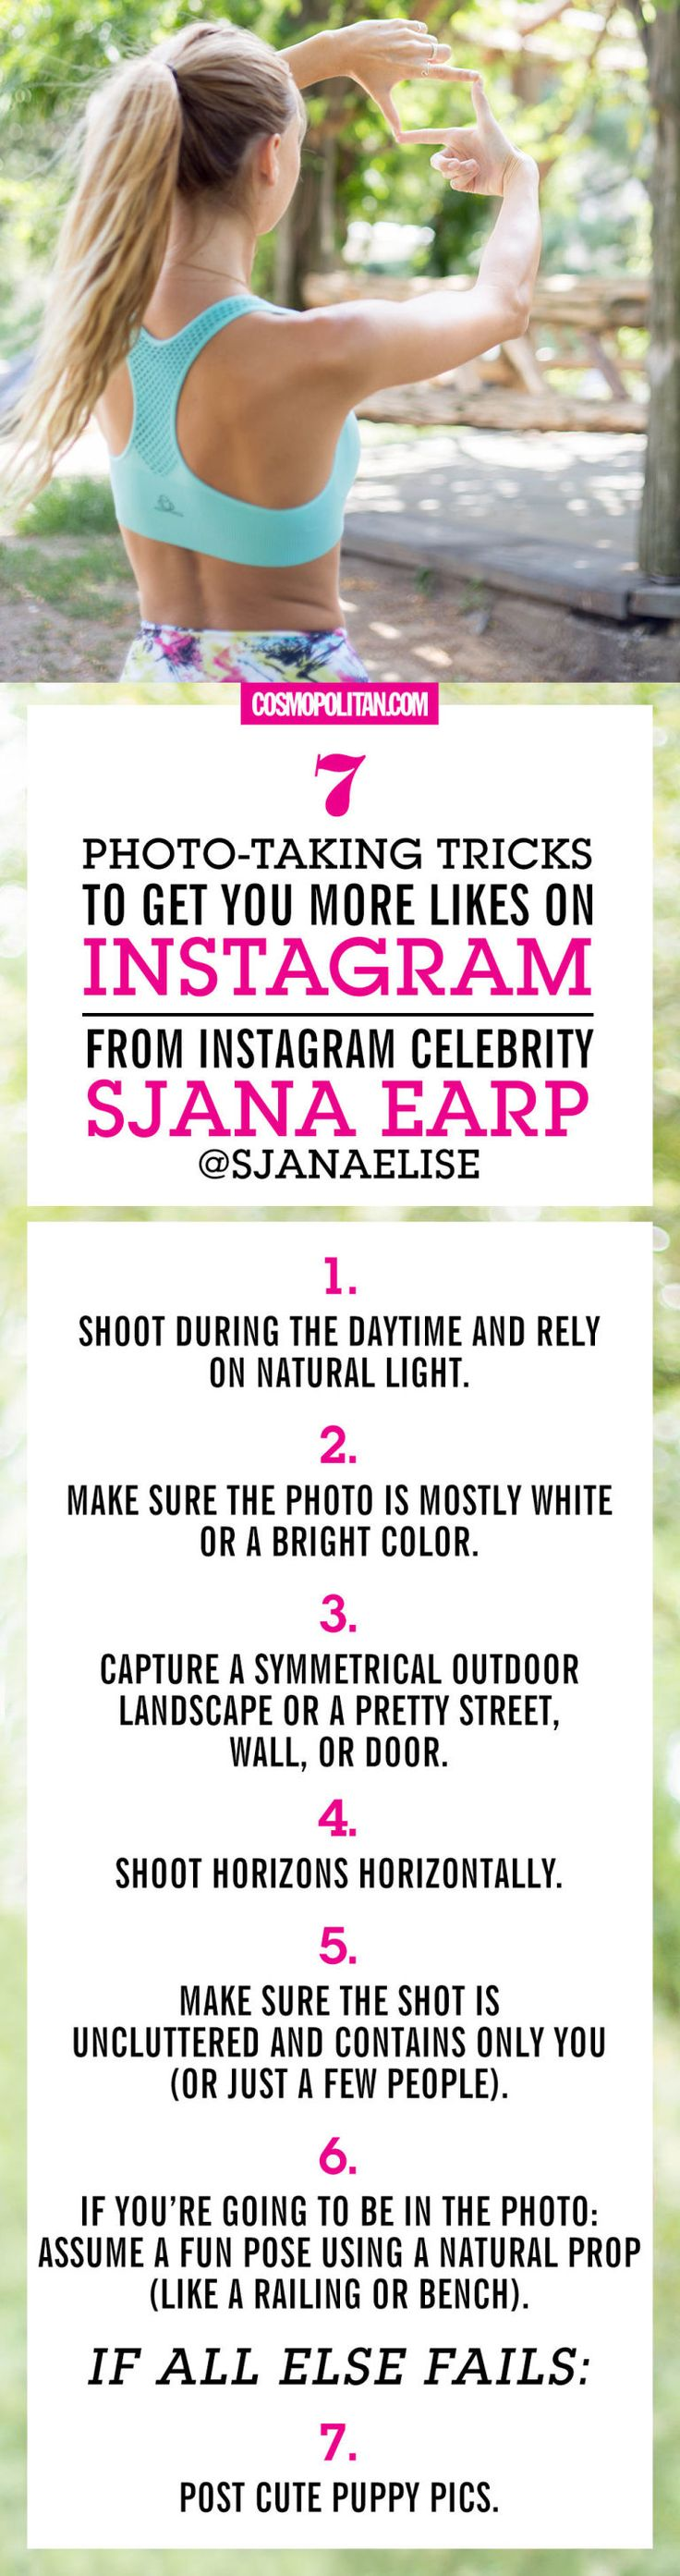 HOW TO GET MORE LIKES ON INSTAGRAM: Here, Instagram famous Sjana Earp told Cosmopolitan.com her best Instagram photo tips and tricks. This girl has a loyal Instagram following (literally thousands of people), so she knows what she's doing. Here you'll learn everything she does to make her photos get thousands of likes and you'll pick up some fun Instagram photo ideas too! Click through to see her best advice and tips including photo editing apps, caption ideas, photo composition tips, fun…